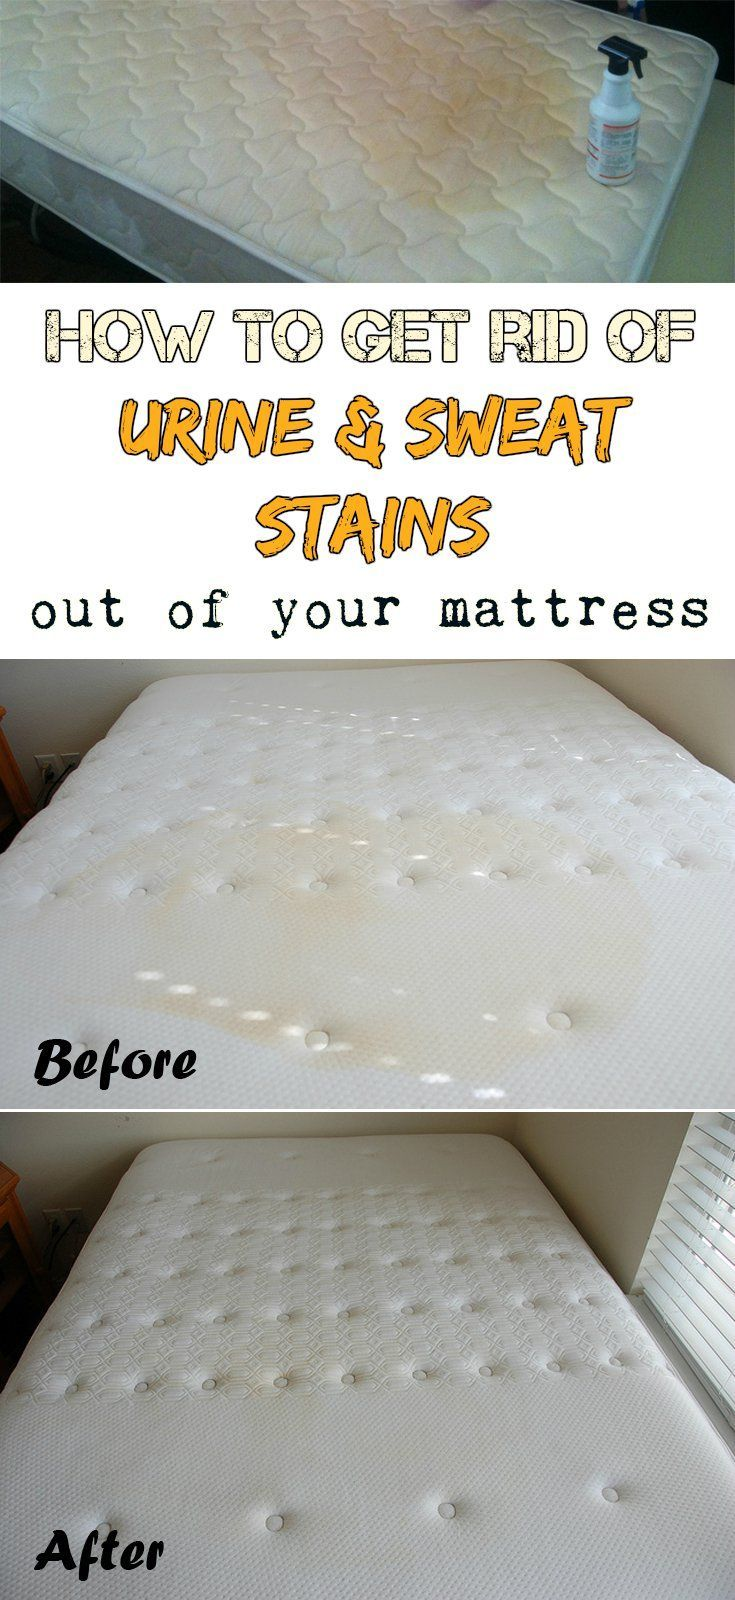 1311 Best Images About CLEANING 1 LIMPIEZA 1 On Pinterest